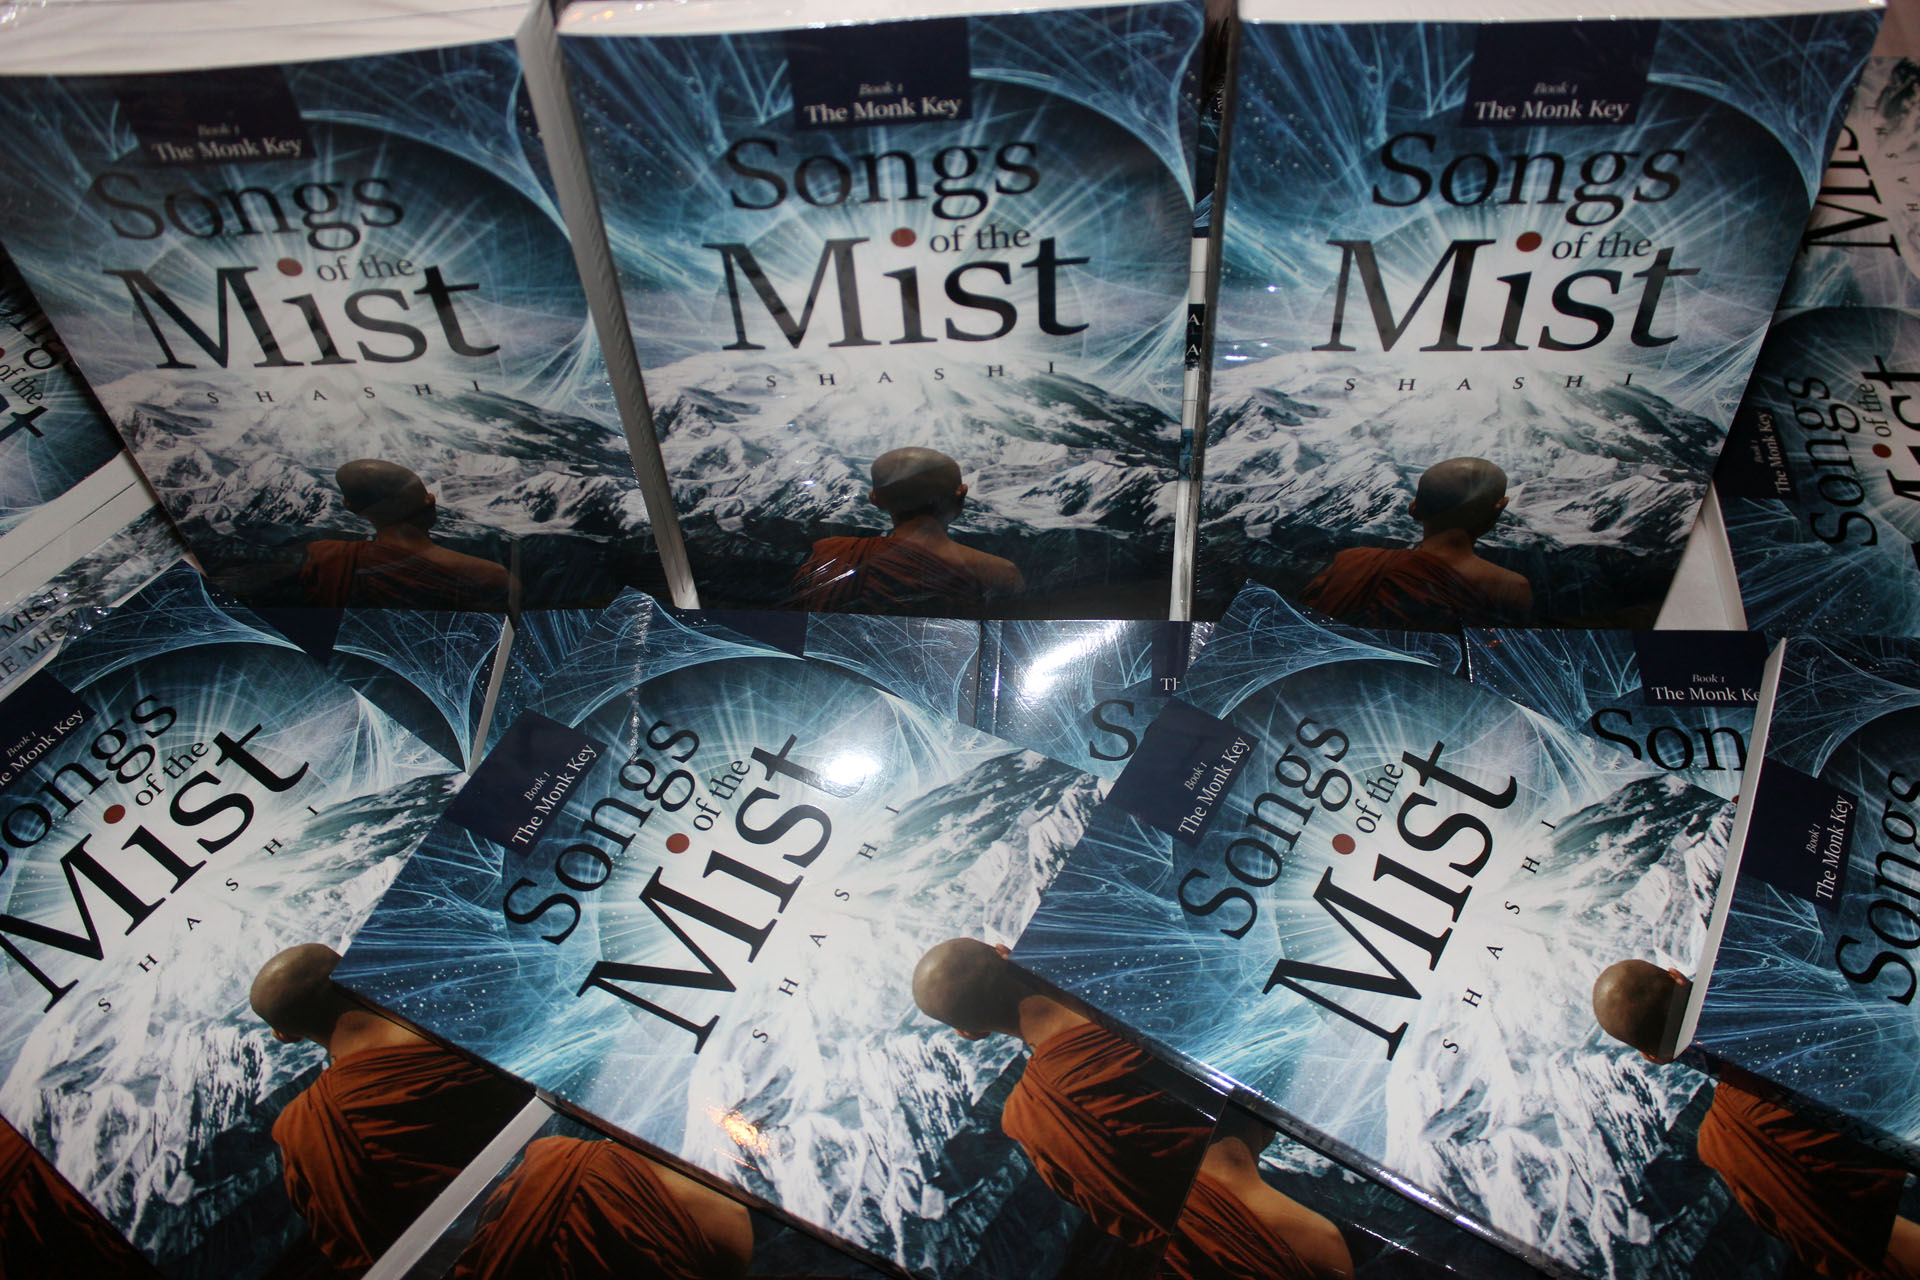 Songs of the Mist – Book reading